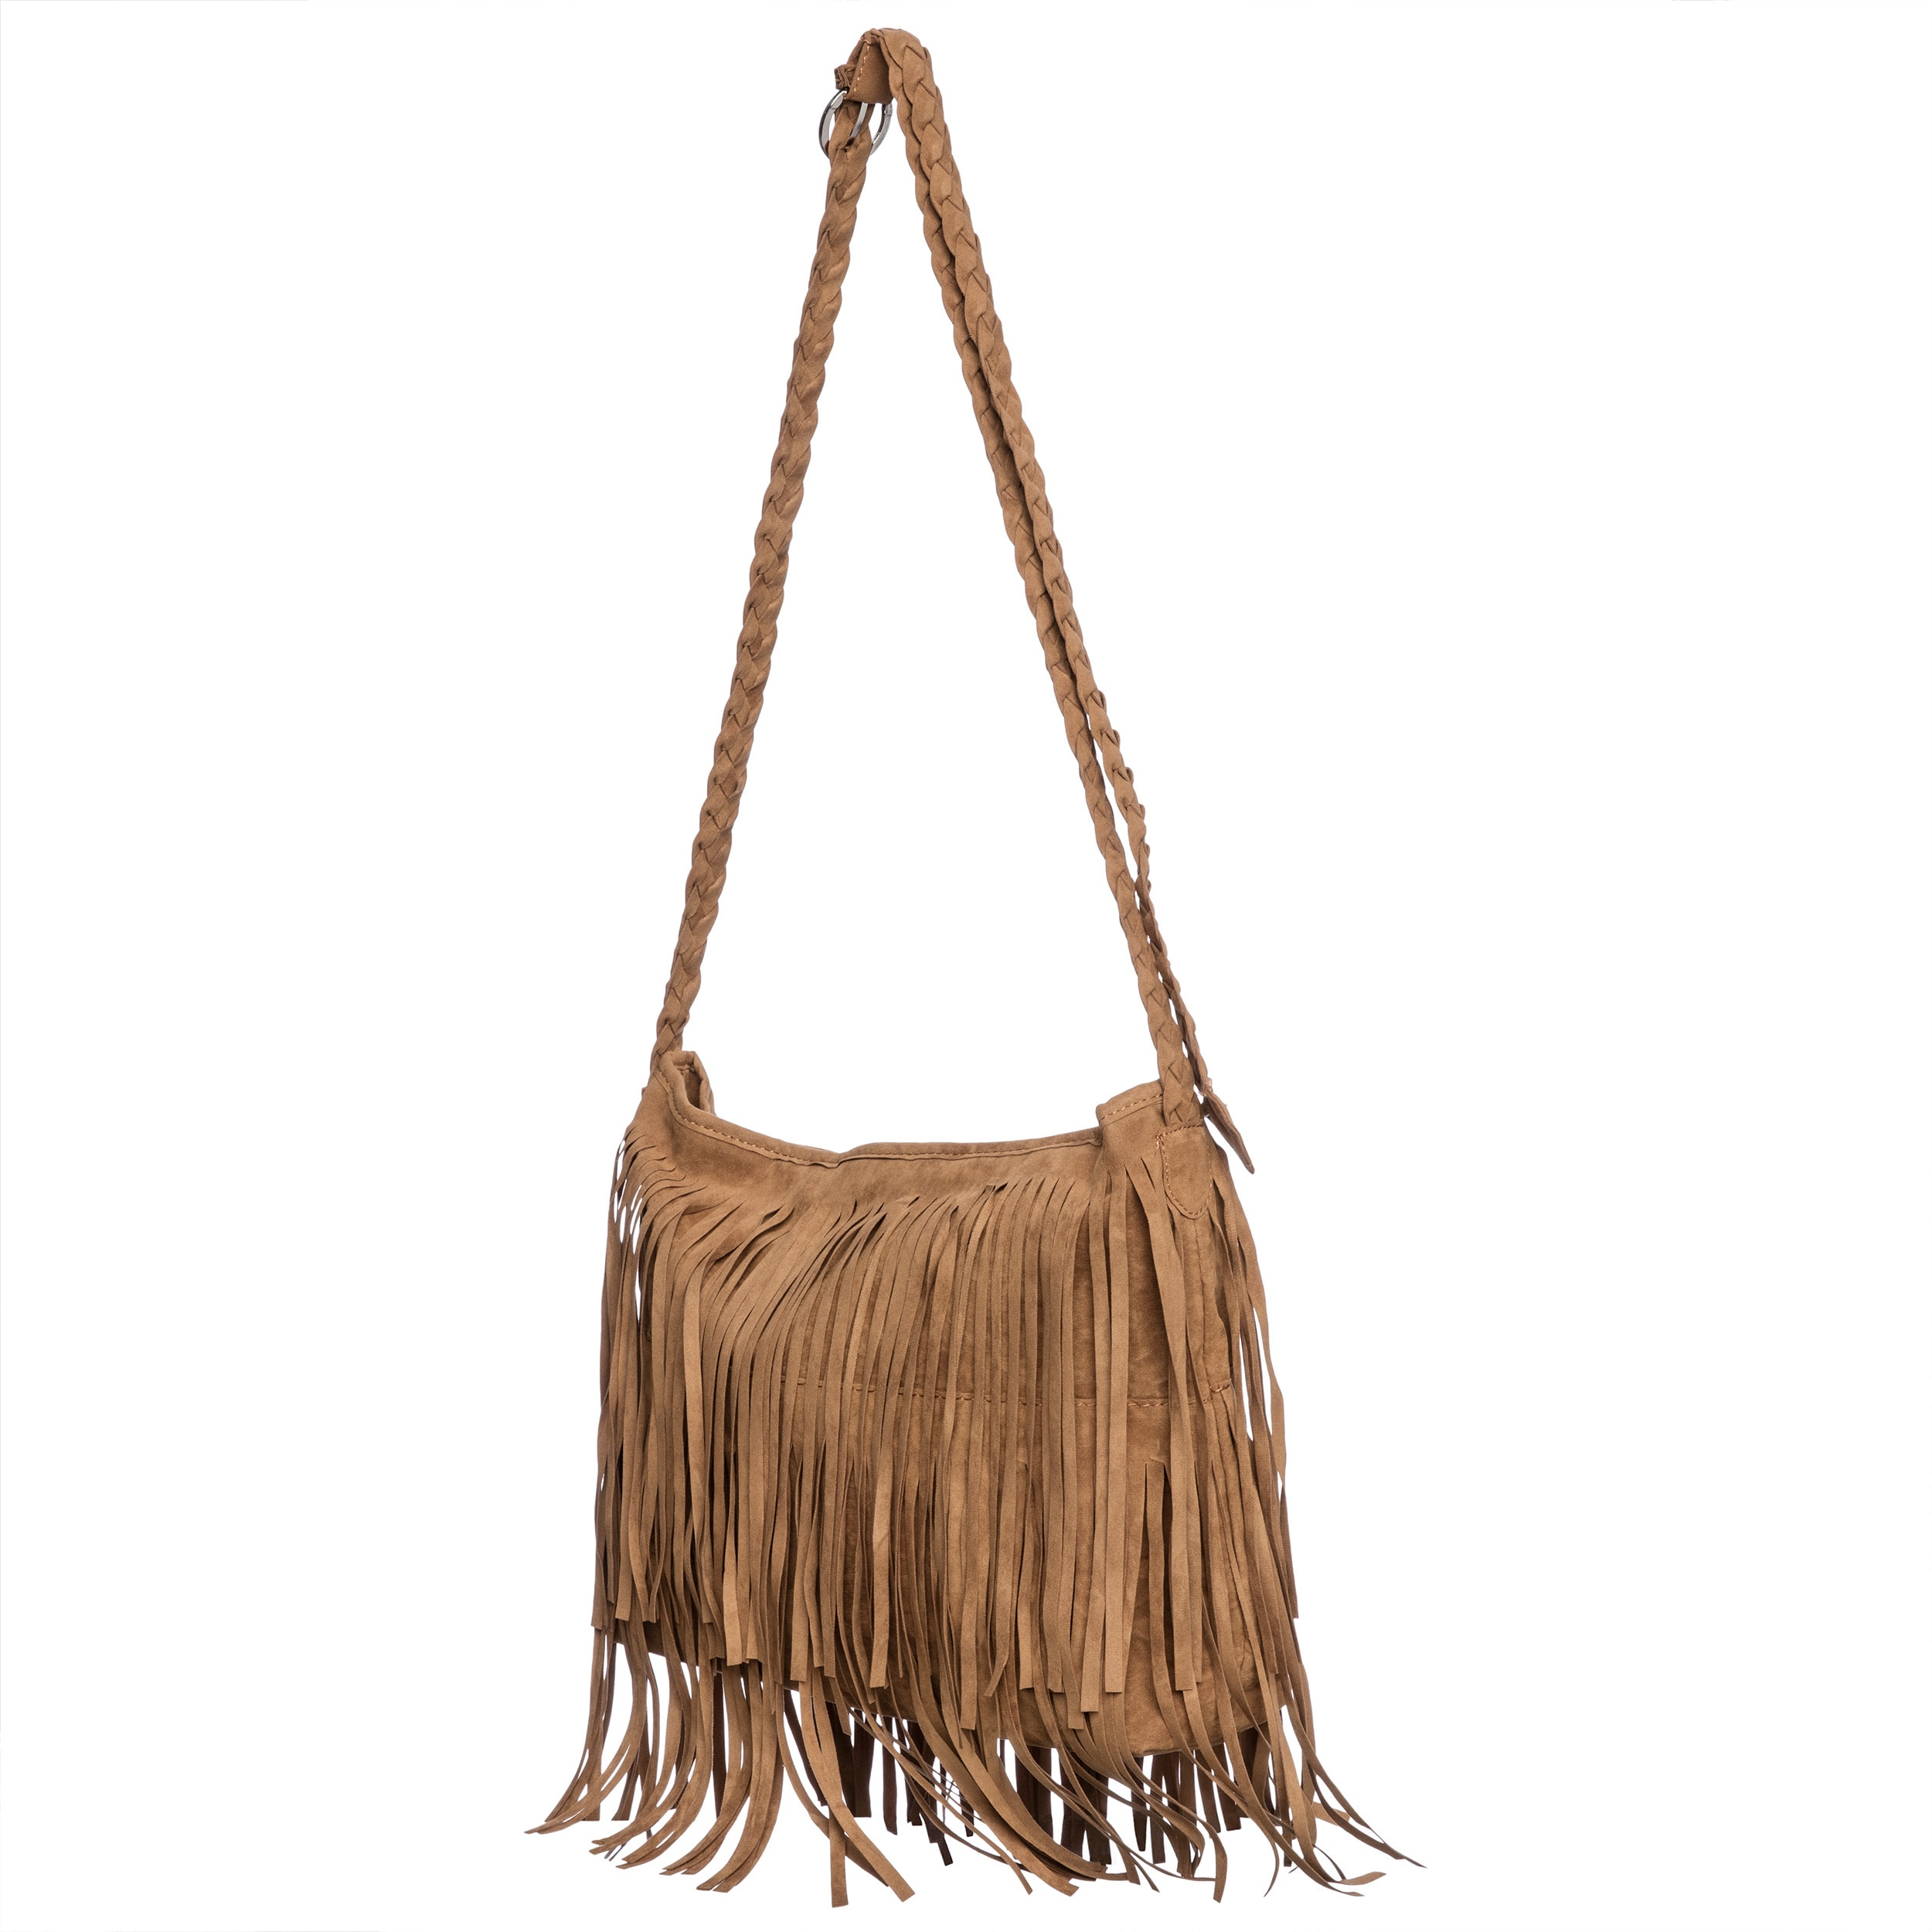 Faux Suede Layered Fringe Shoulder Bag Free Shipping On Orders Over 45 9270493